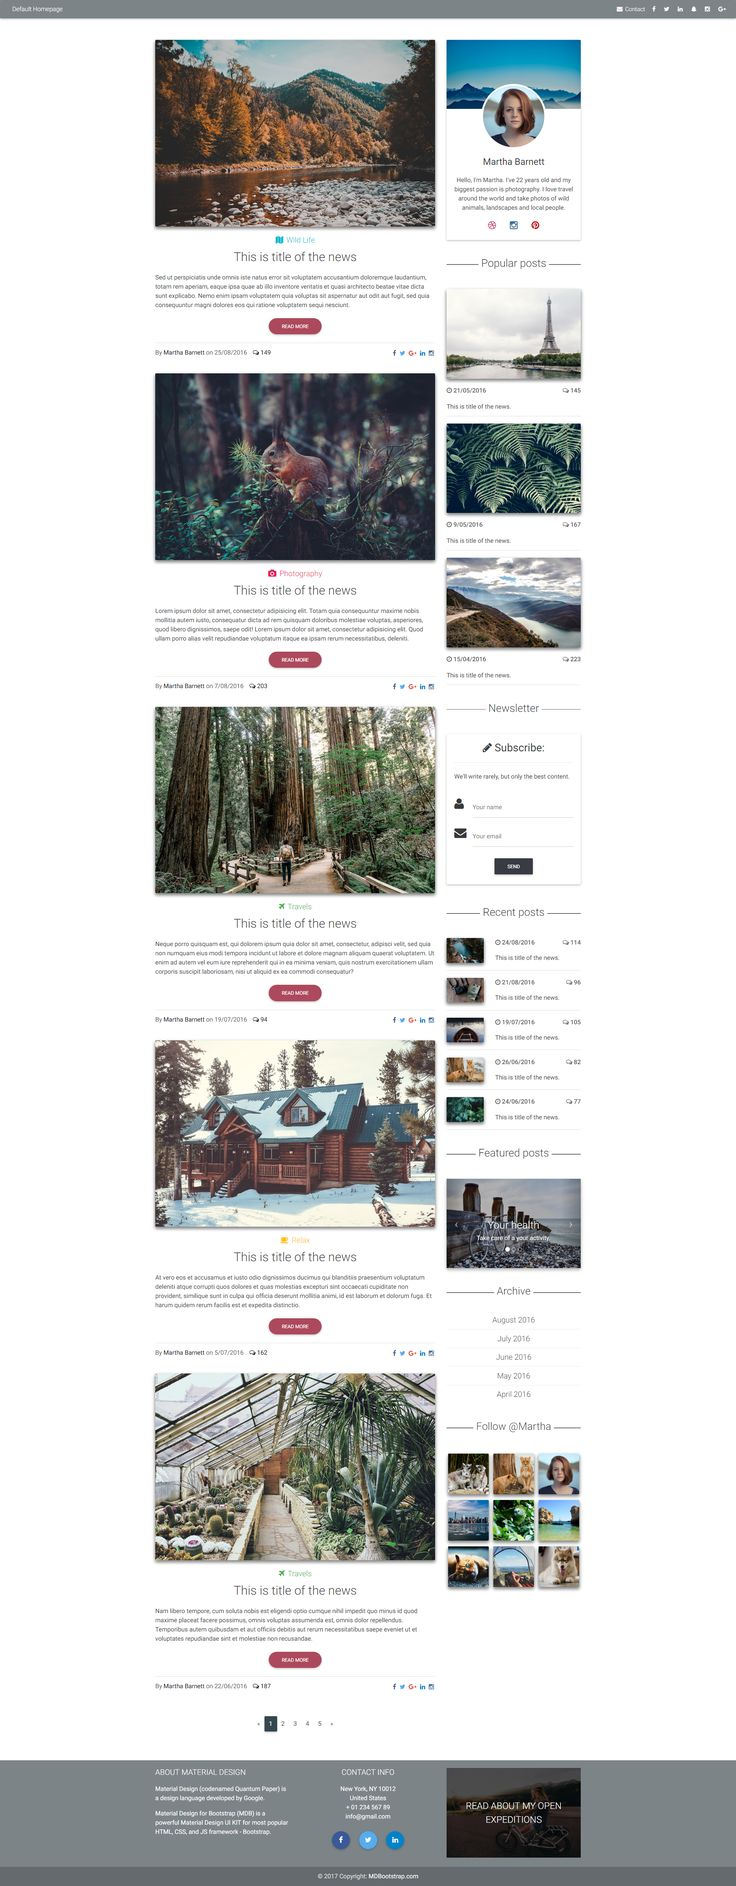 Blog Home Page template created with Material Design.